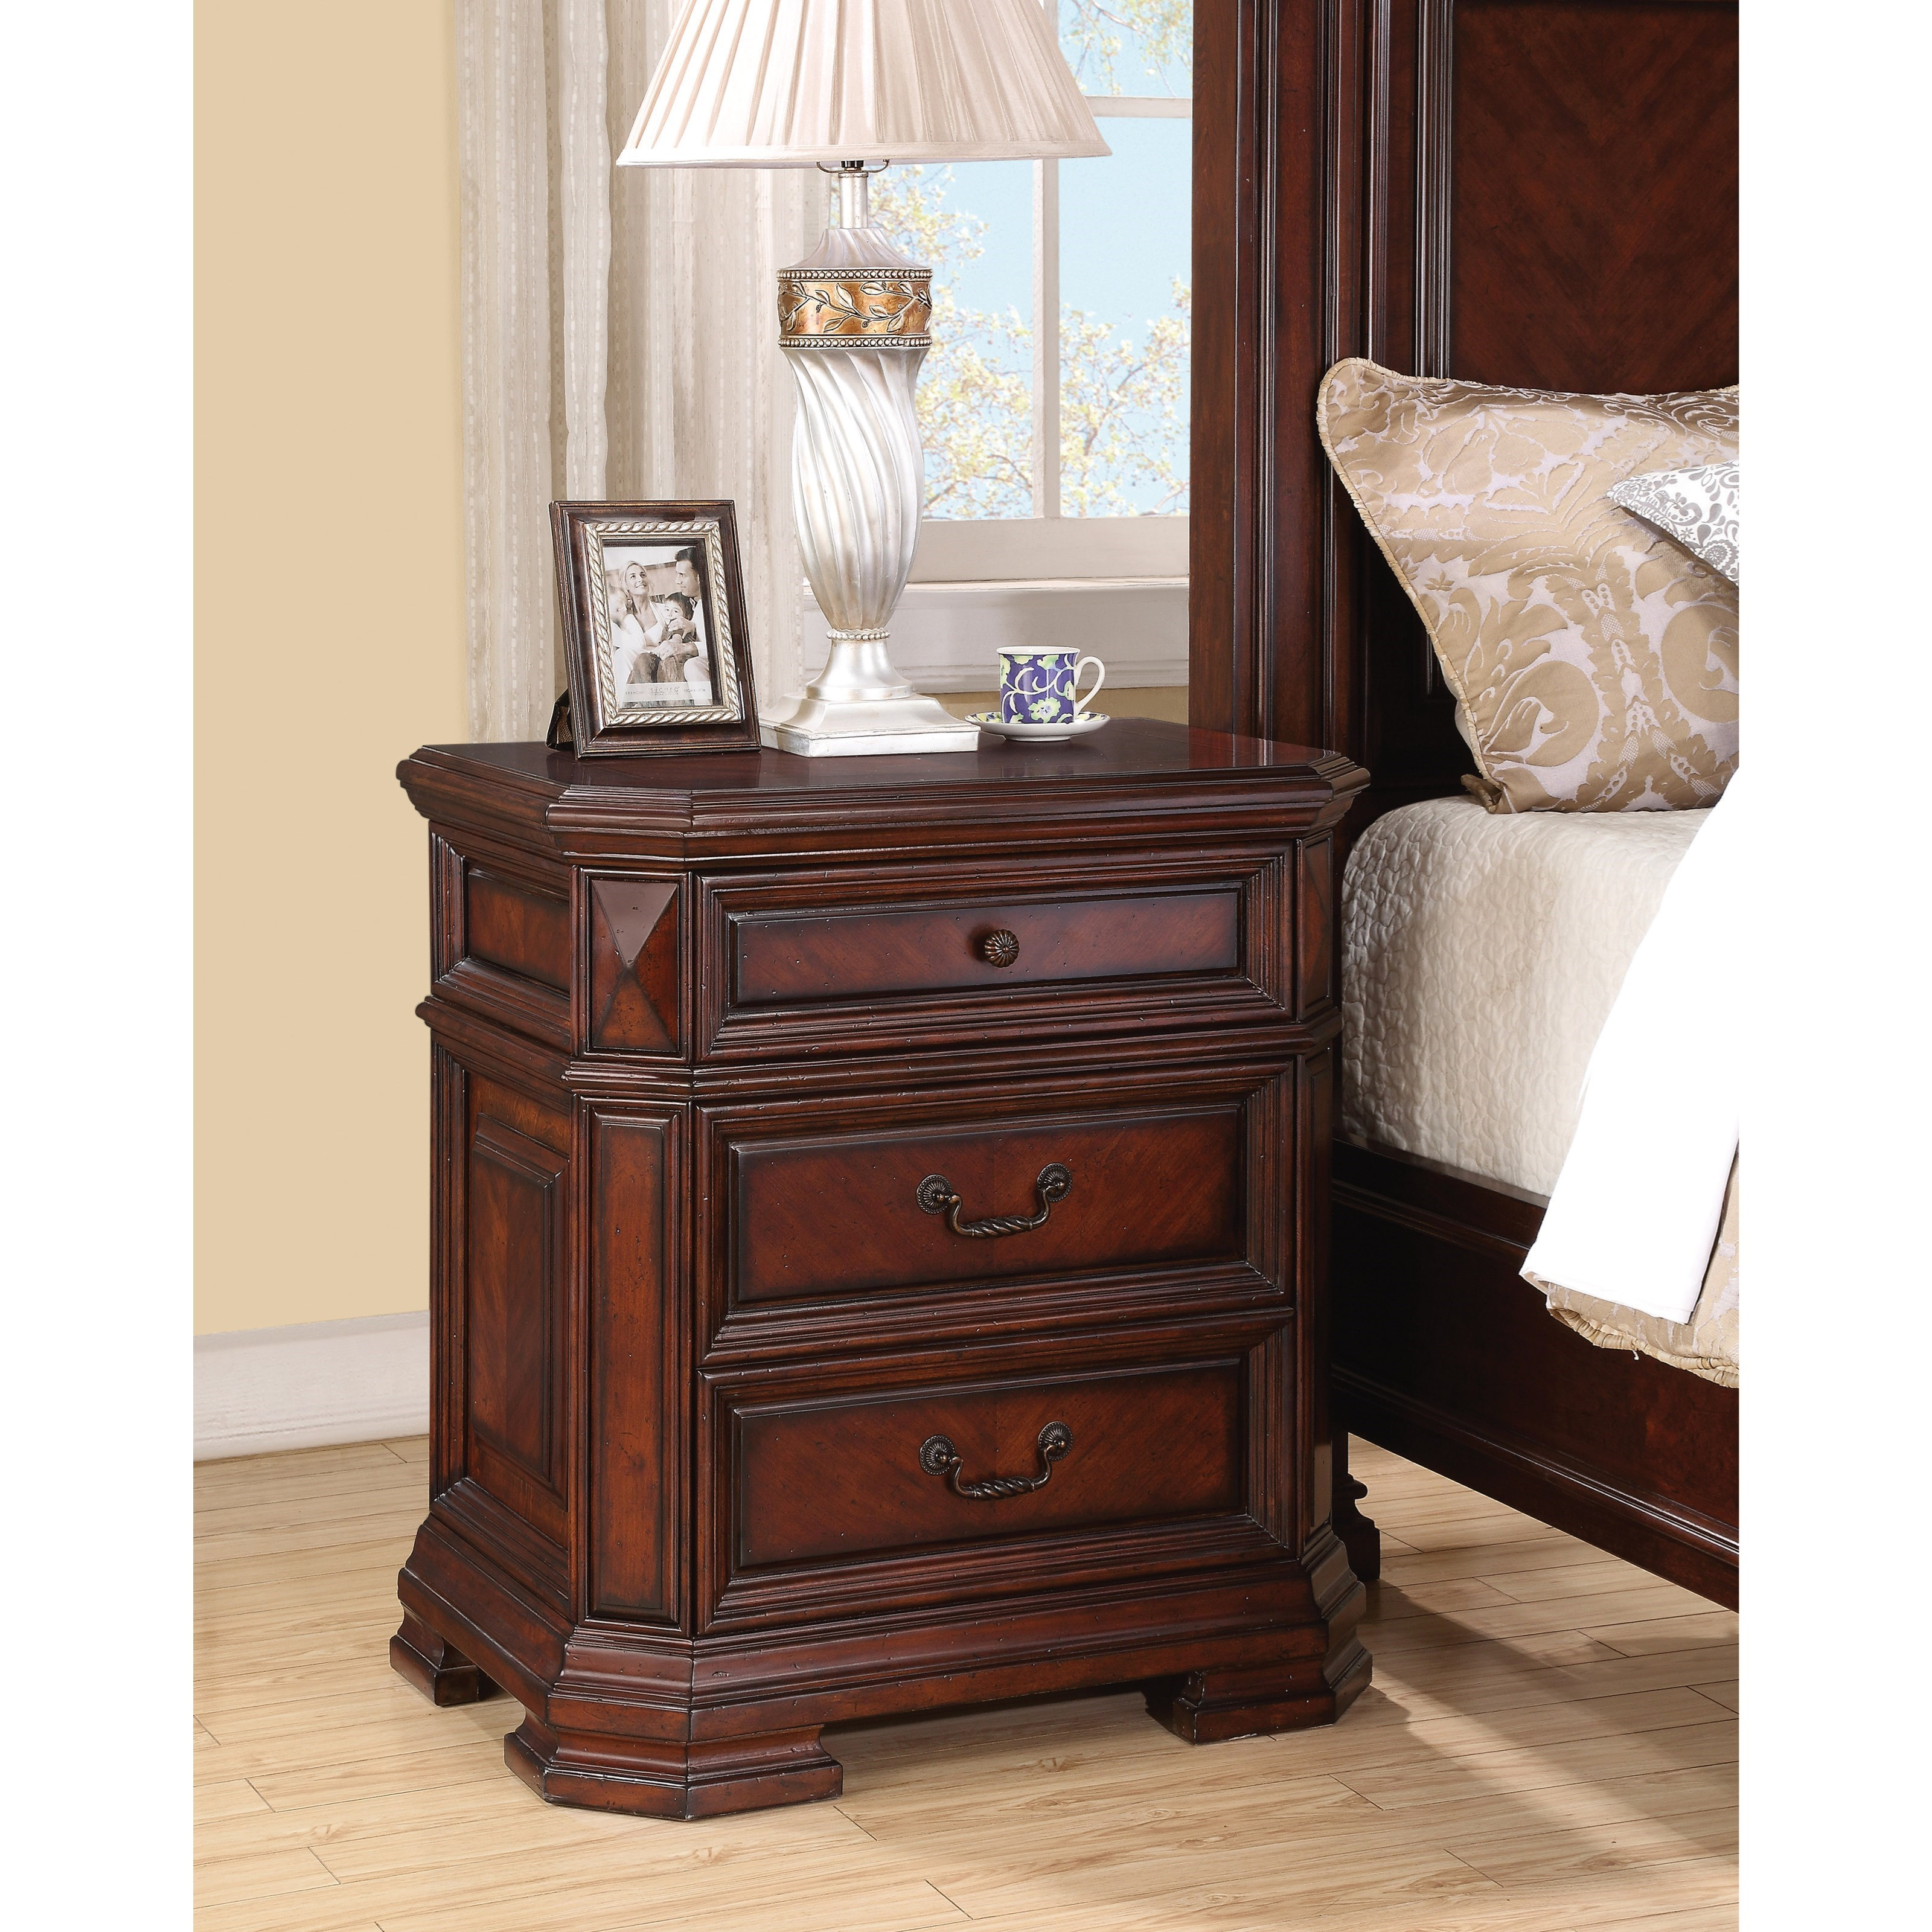 flexsteel wynwood collection westchester traditional night stand with builtin power - Wynwood Furniture